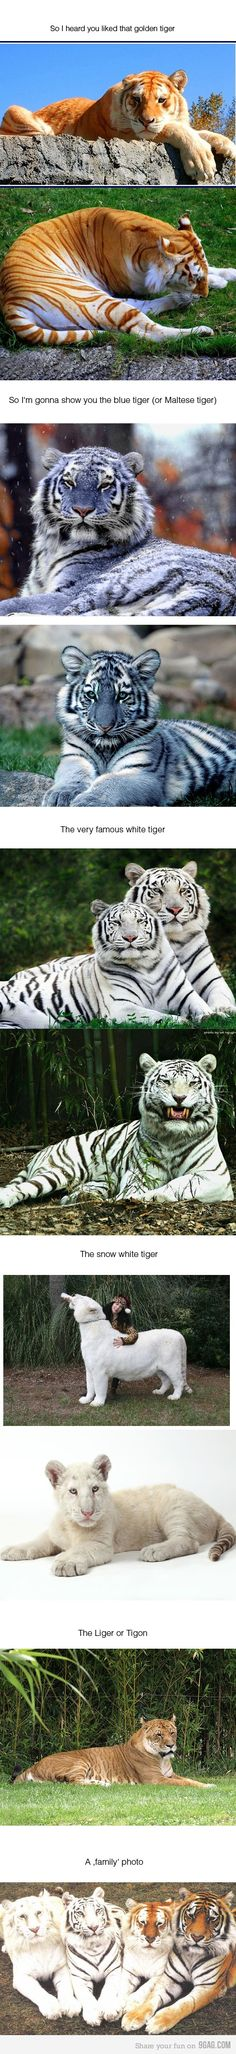 I didn't know tigers came in so many colors!!!! I WANT ONE OF EACH!!